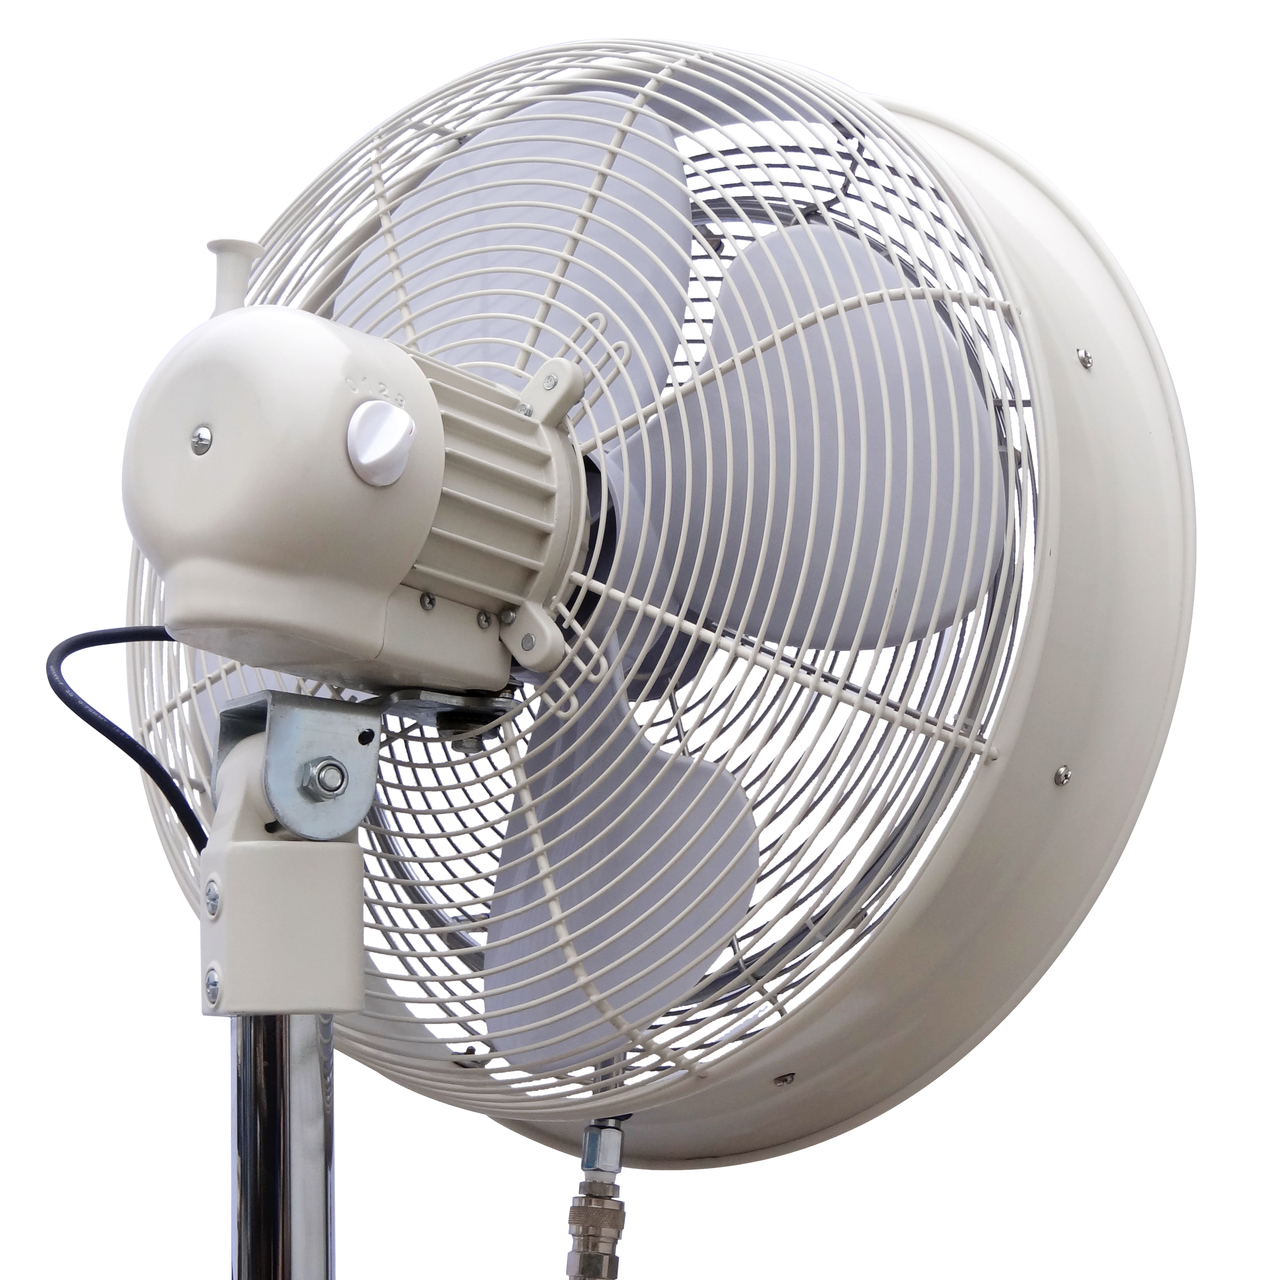 rear angle view of fan